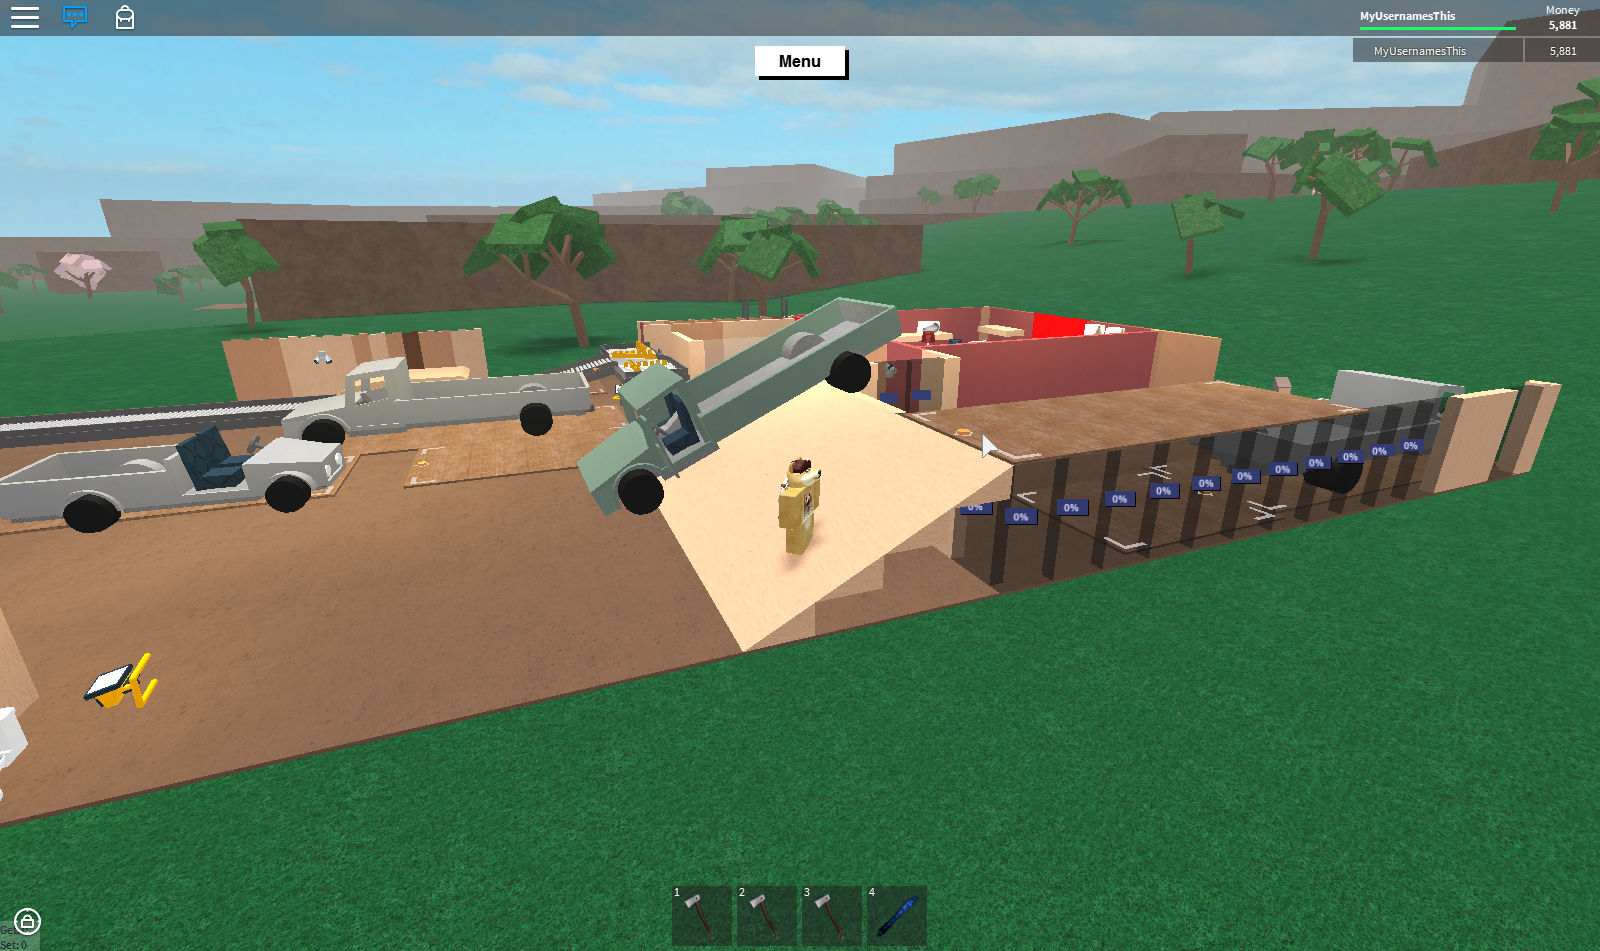 Full Download Roblox Lumber Tycoon 2 Hitch Update - Imagez co